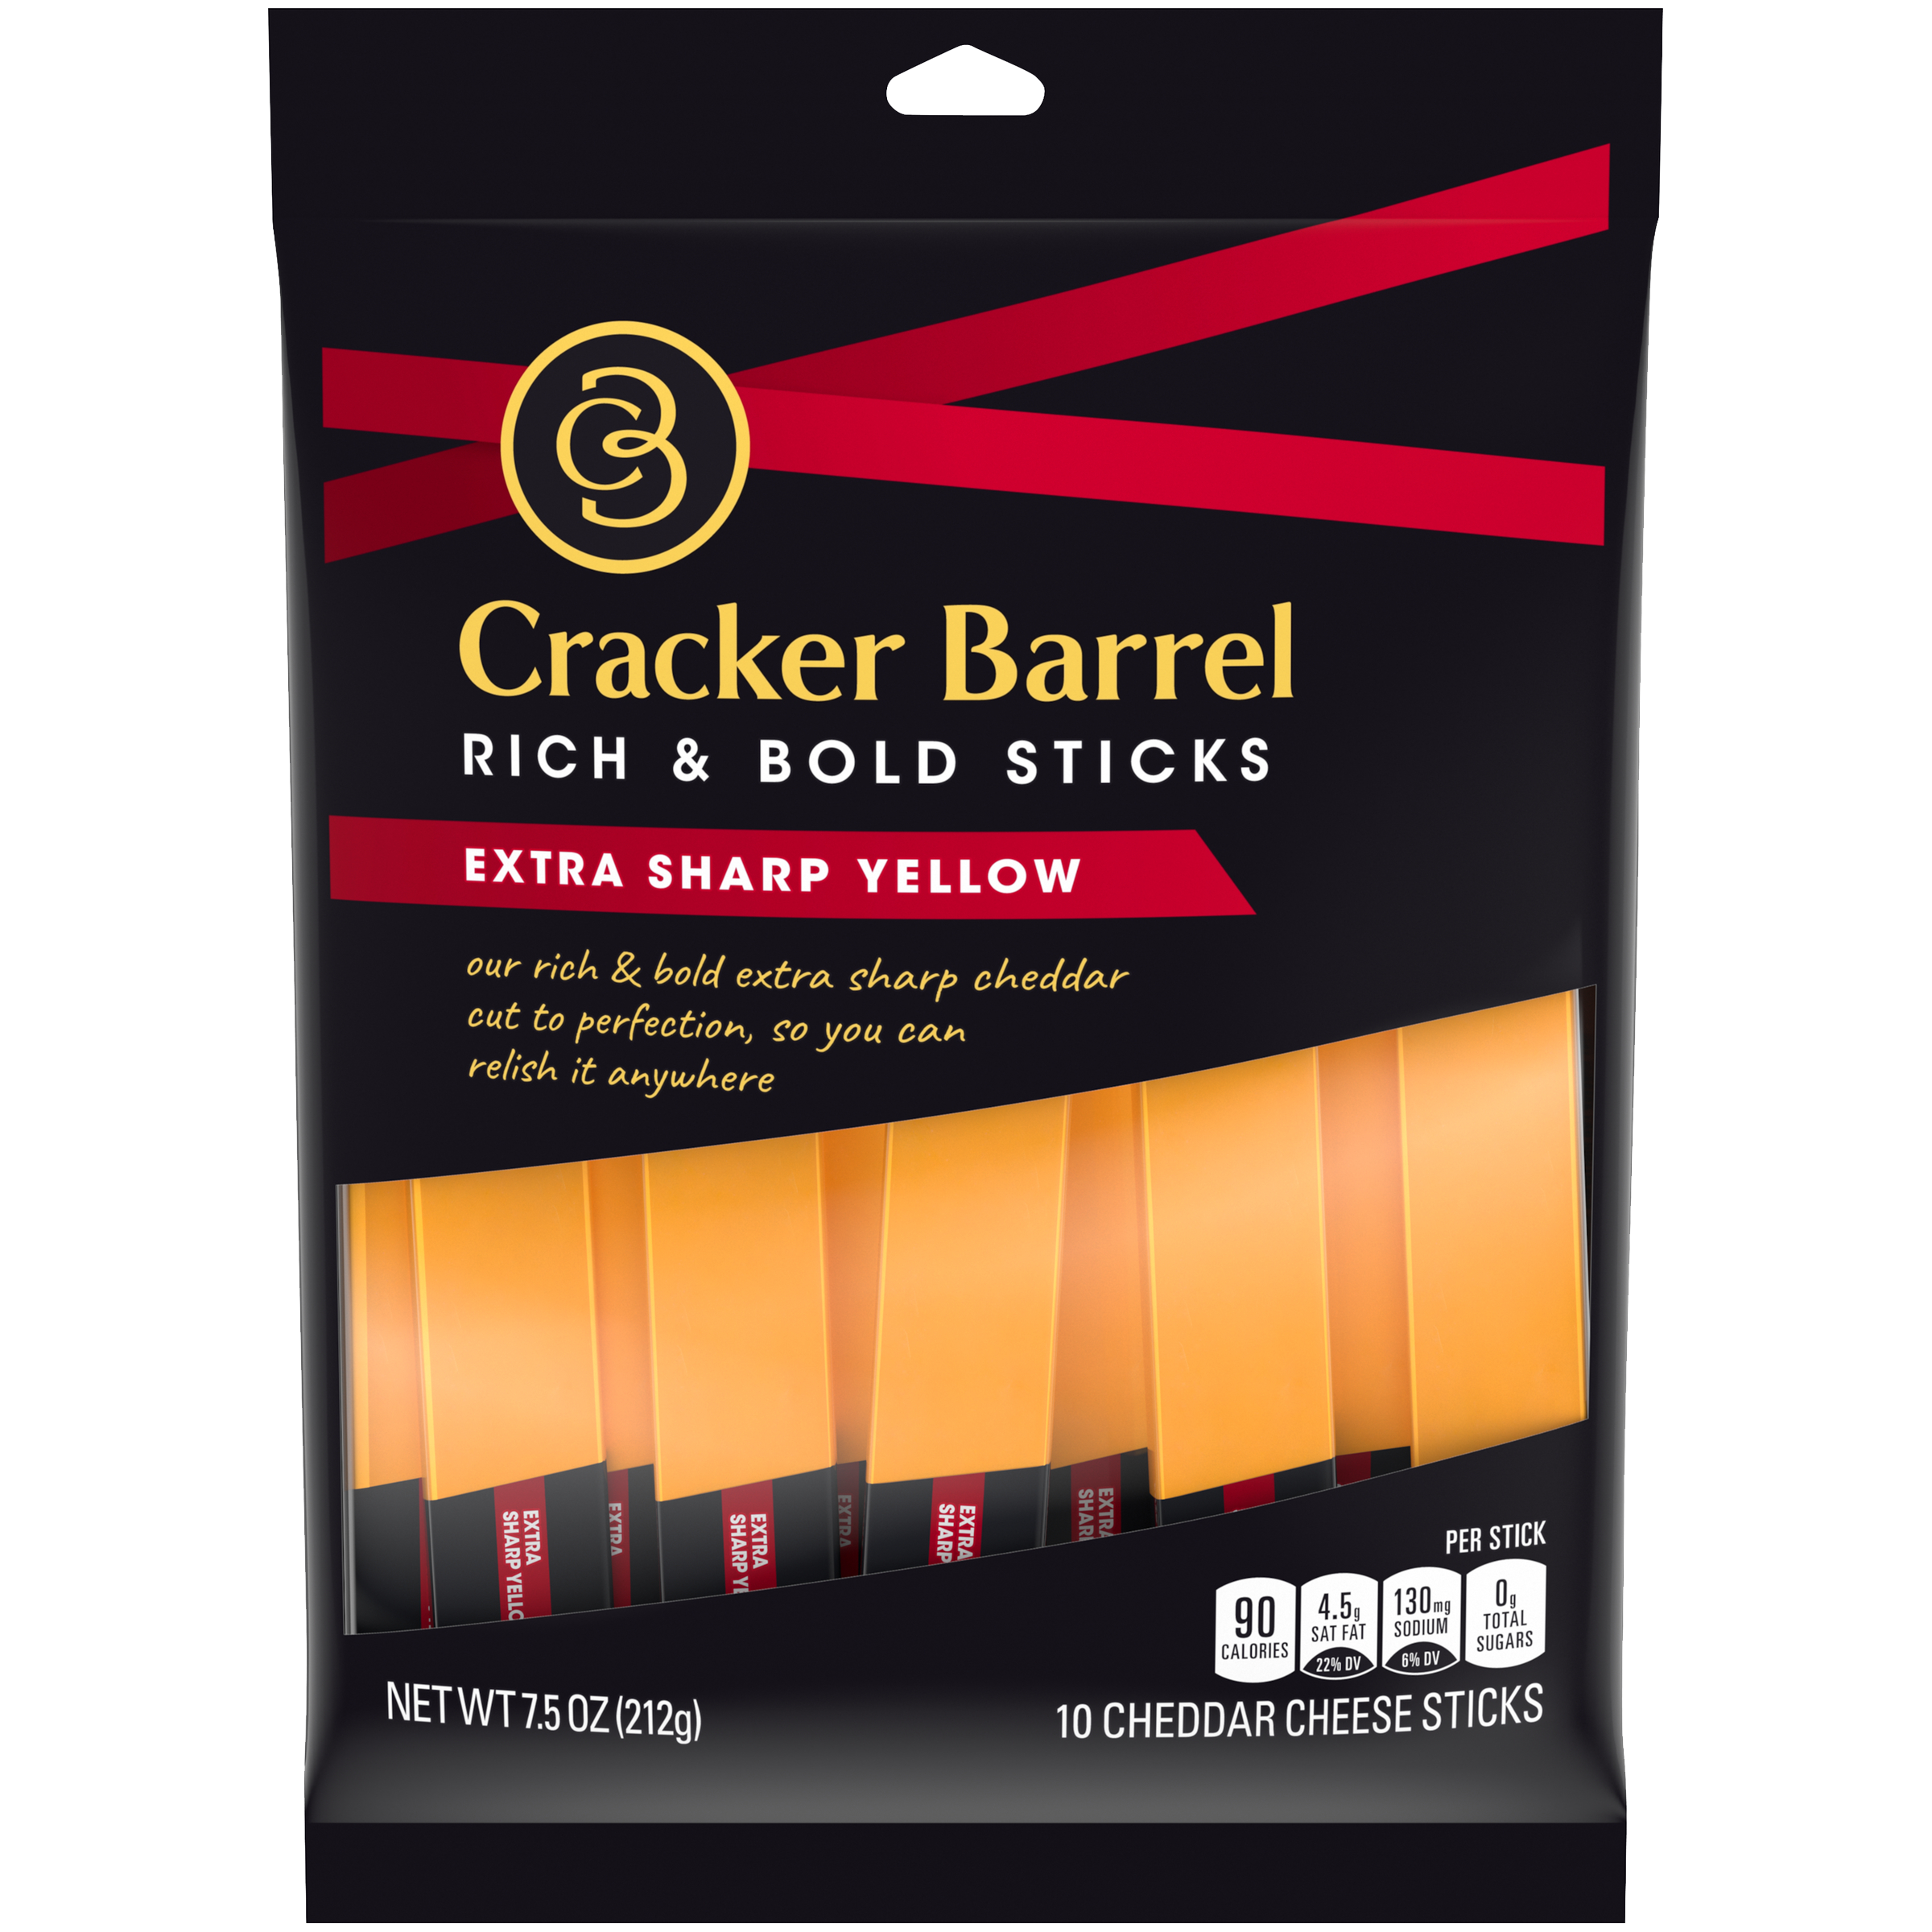 Extra Sharp Yellow Cheddar Sticks